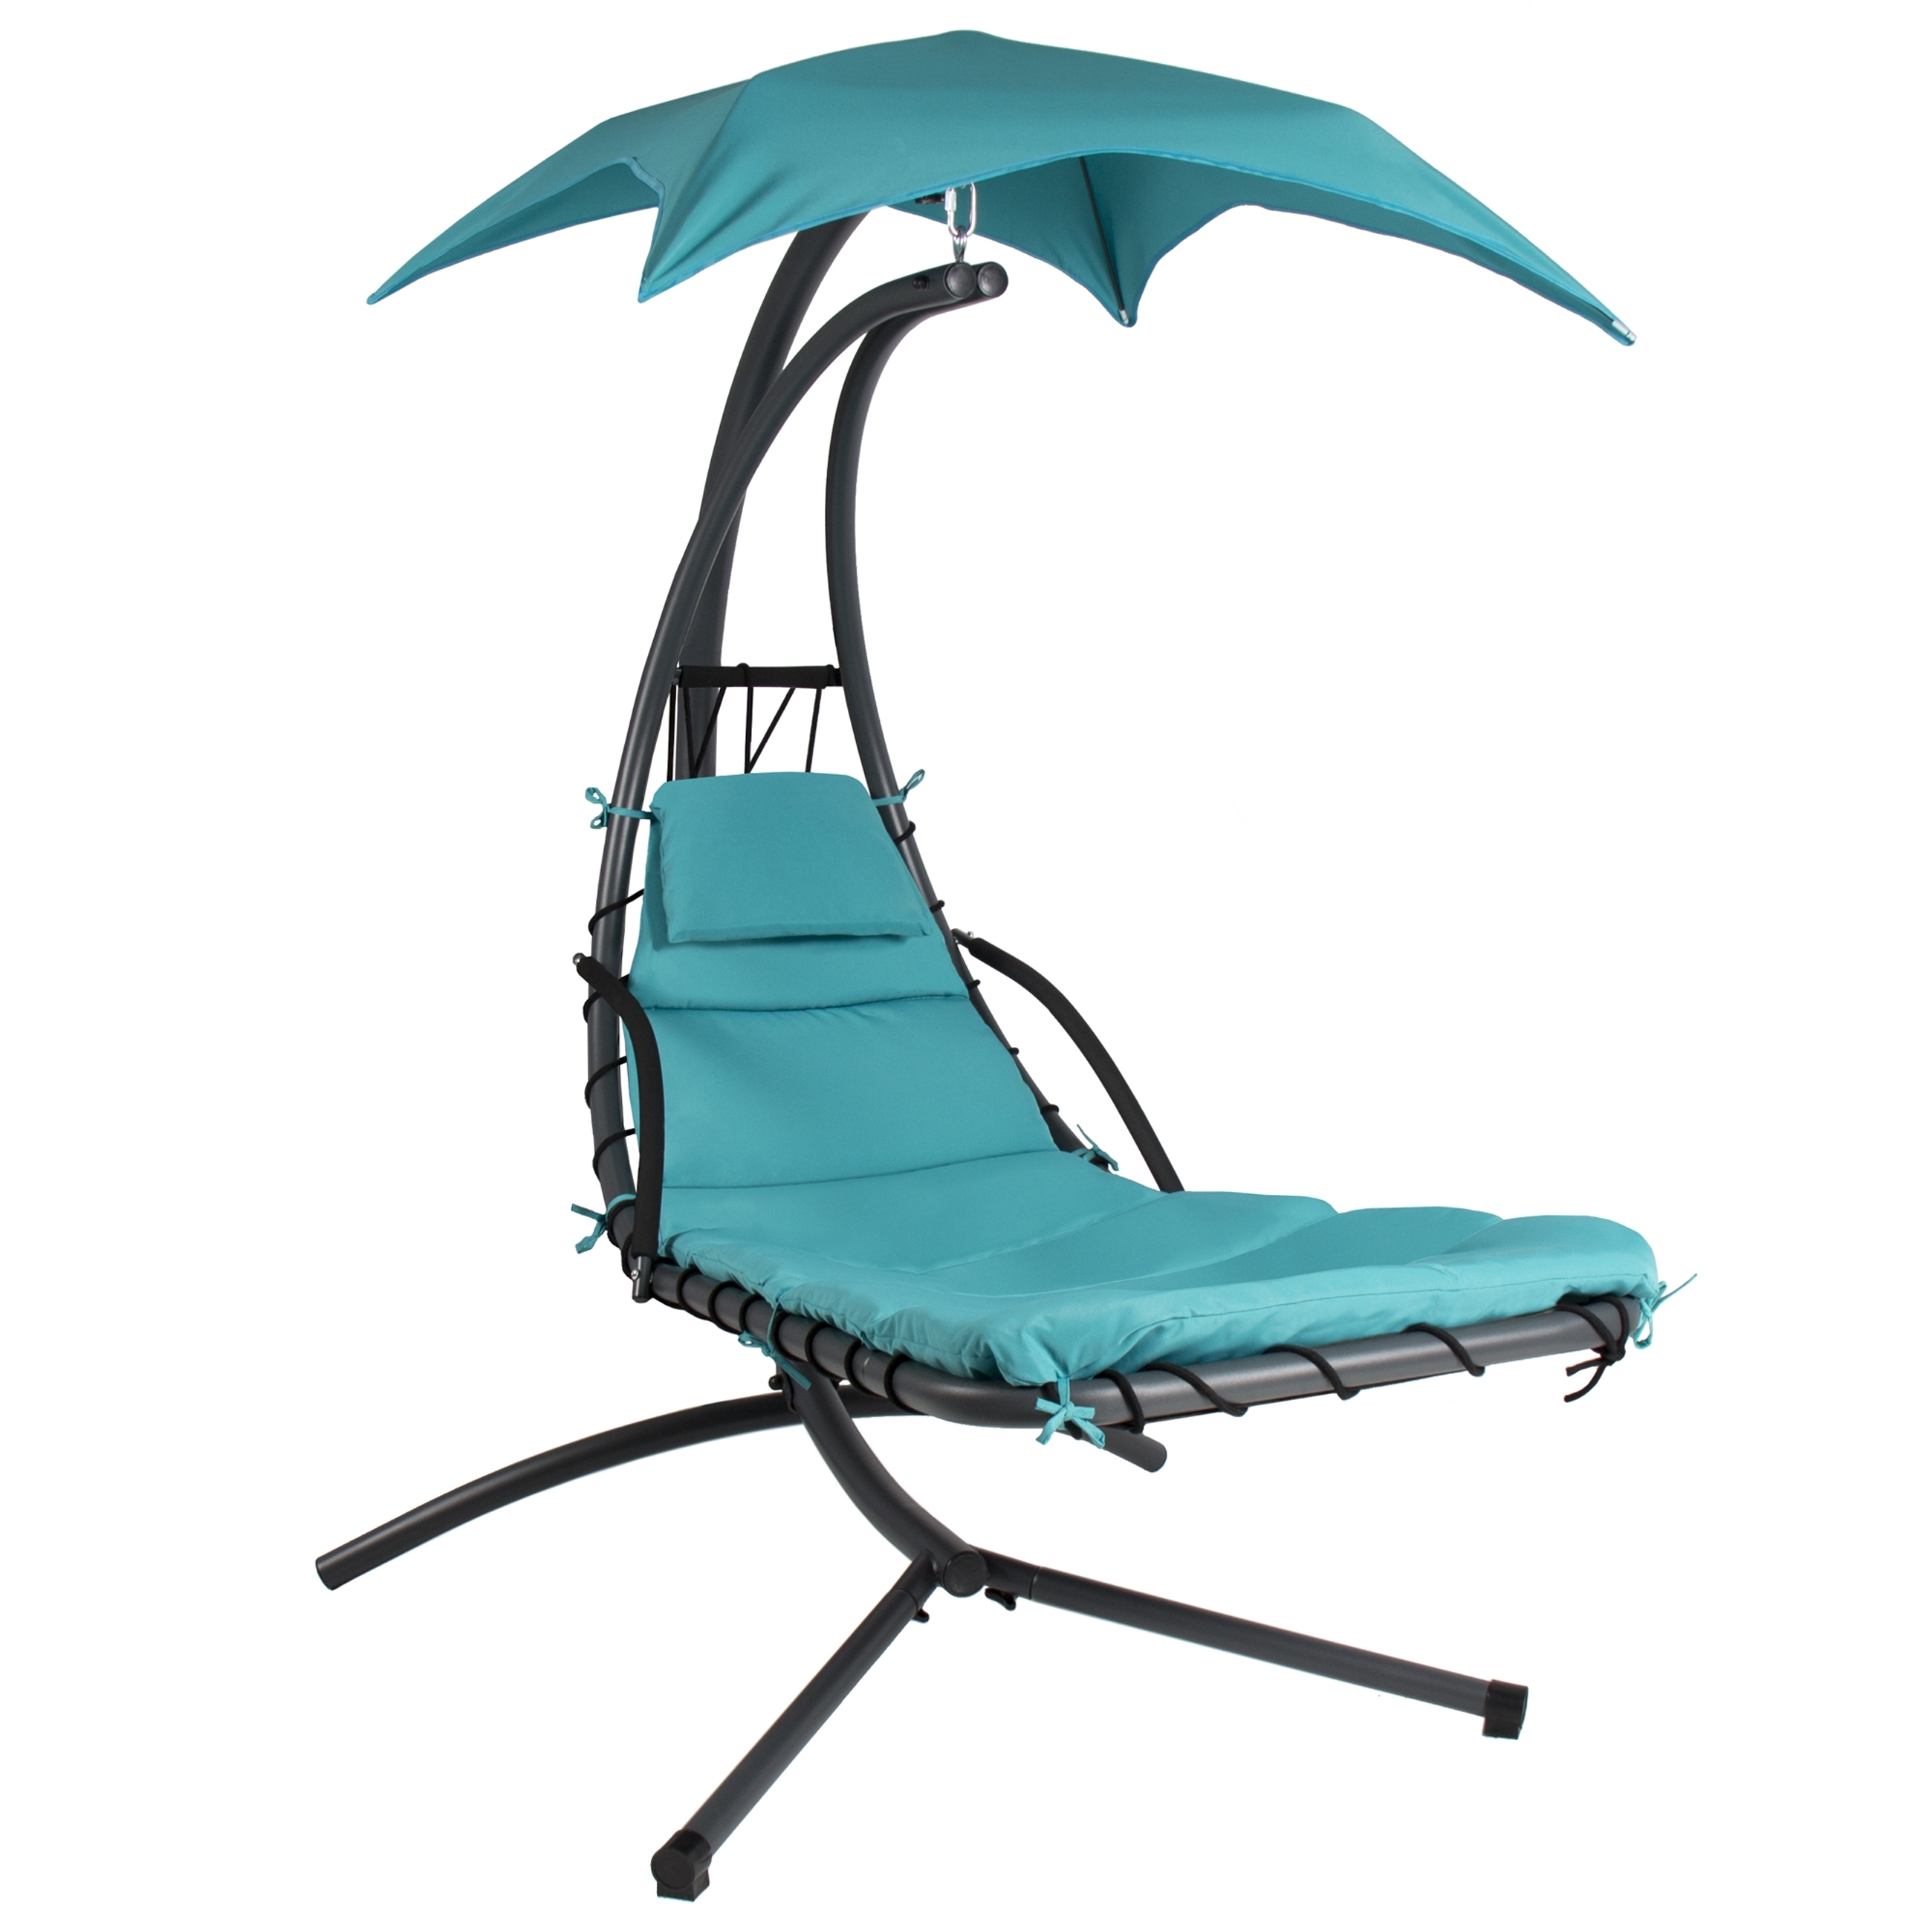 Most Recently Released Hanging Chaise Lounge Chair • Lounge Chairs Ideas With Hanging Chaise Lounge Chairs (View 8 of 15)